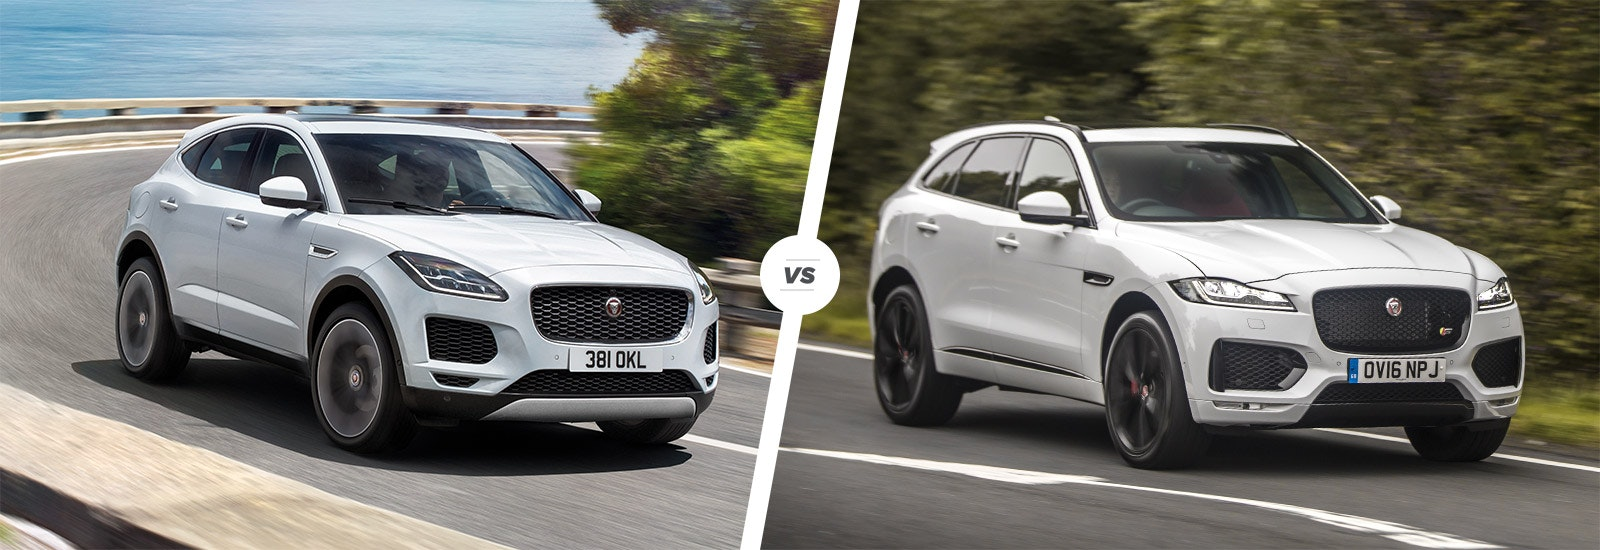 Car Start With D >> Jaguar E-Pace vs F-Pace – which SUV is best? | carwow